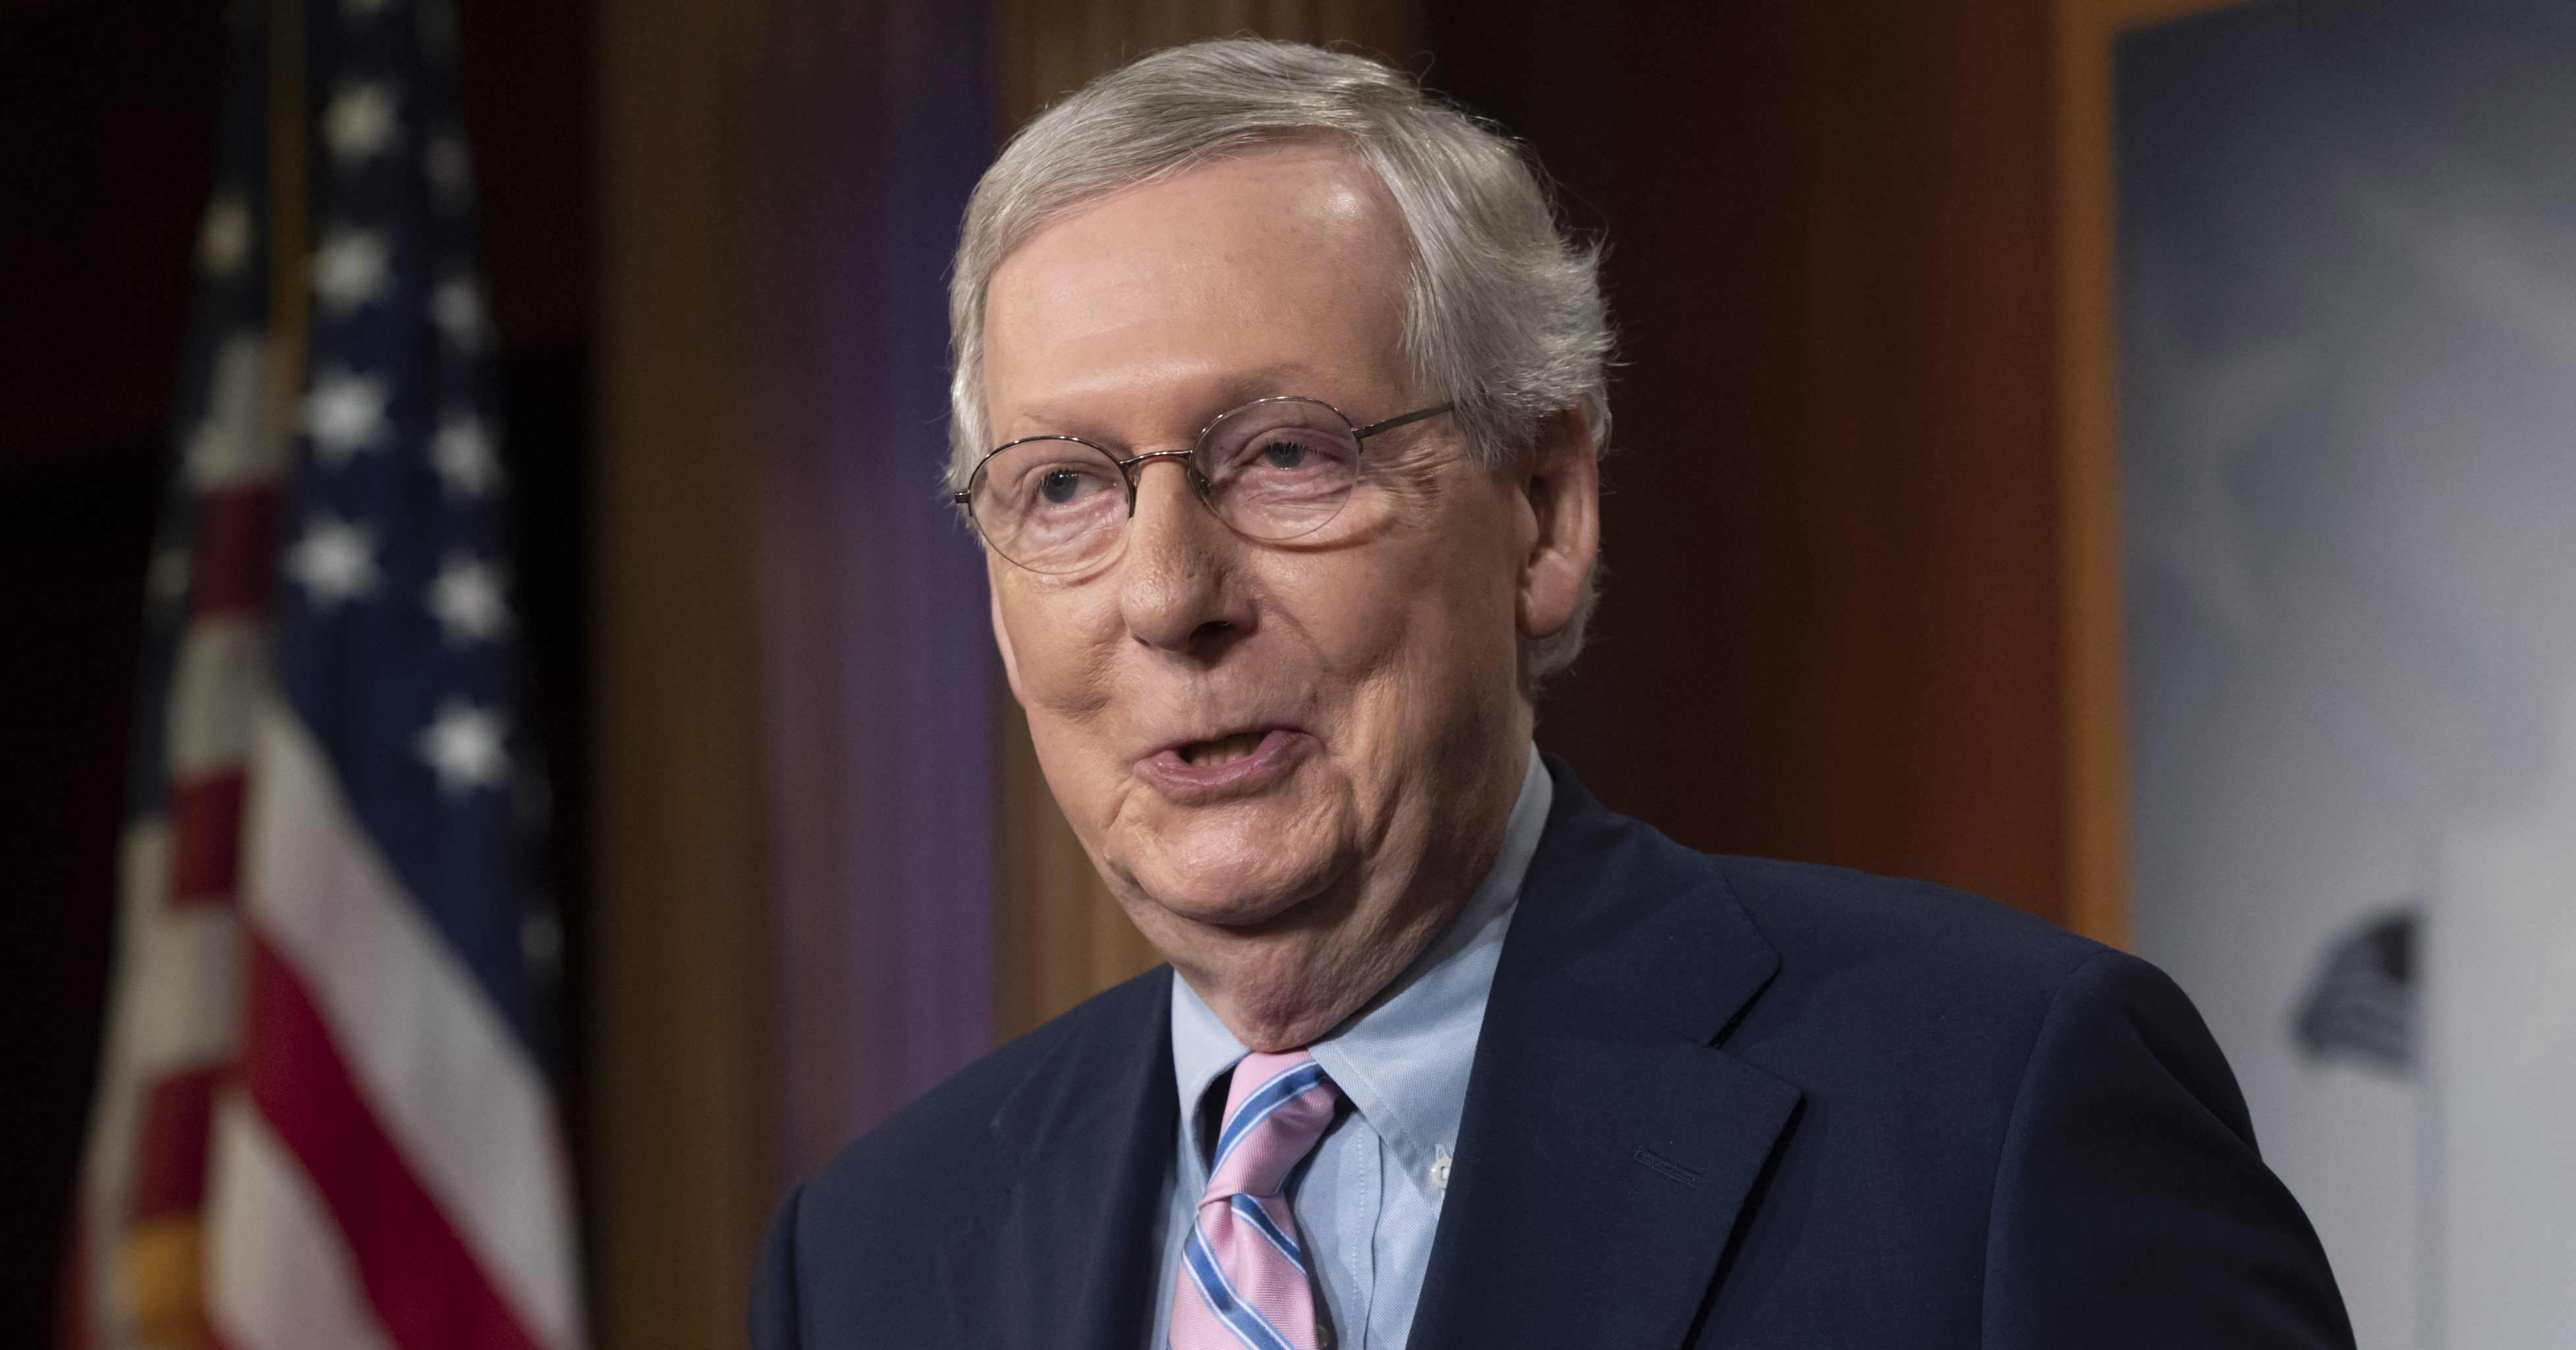 Senate Majority Leader Mitch McConnell, R-Ky., speaks to reporters